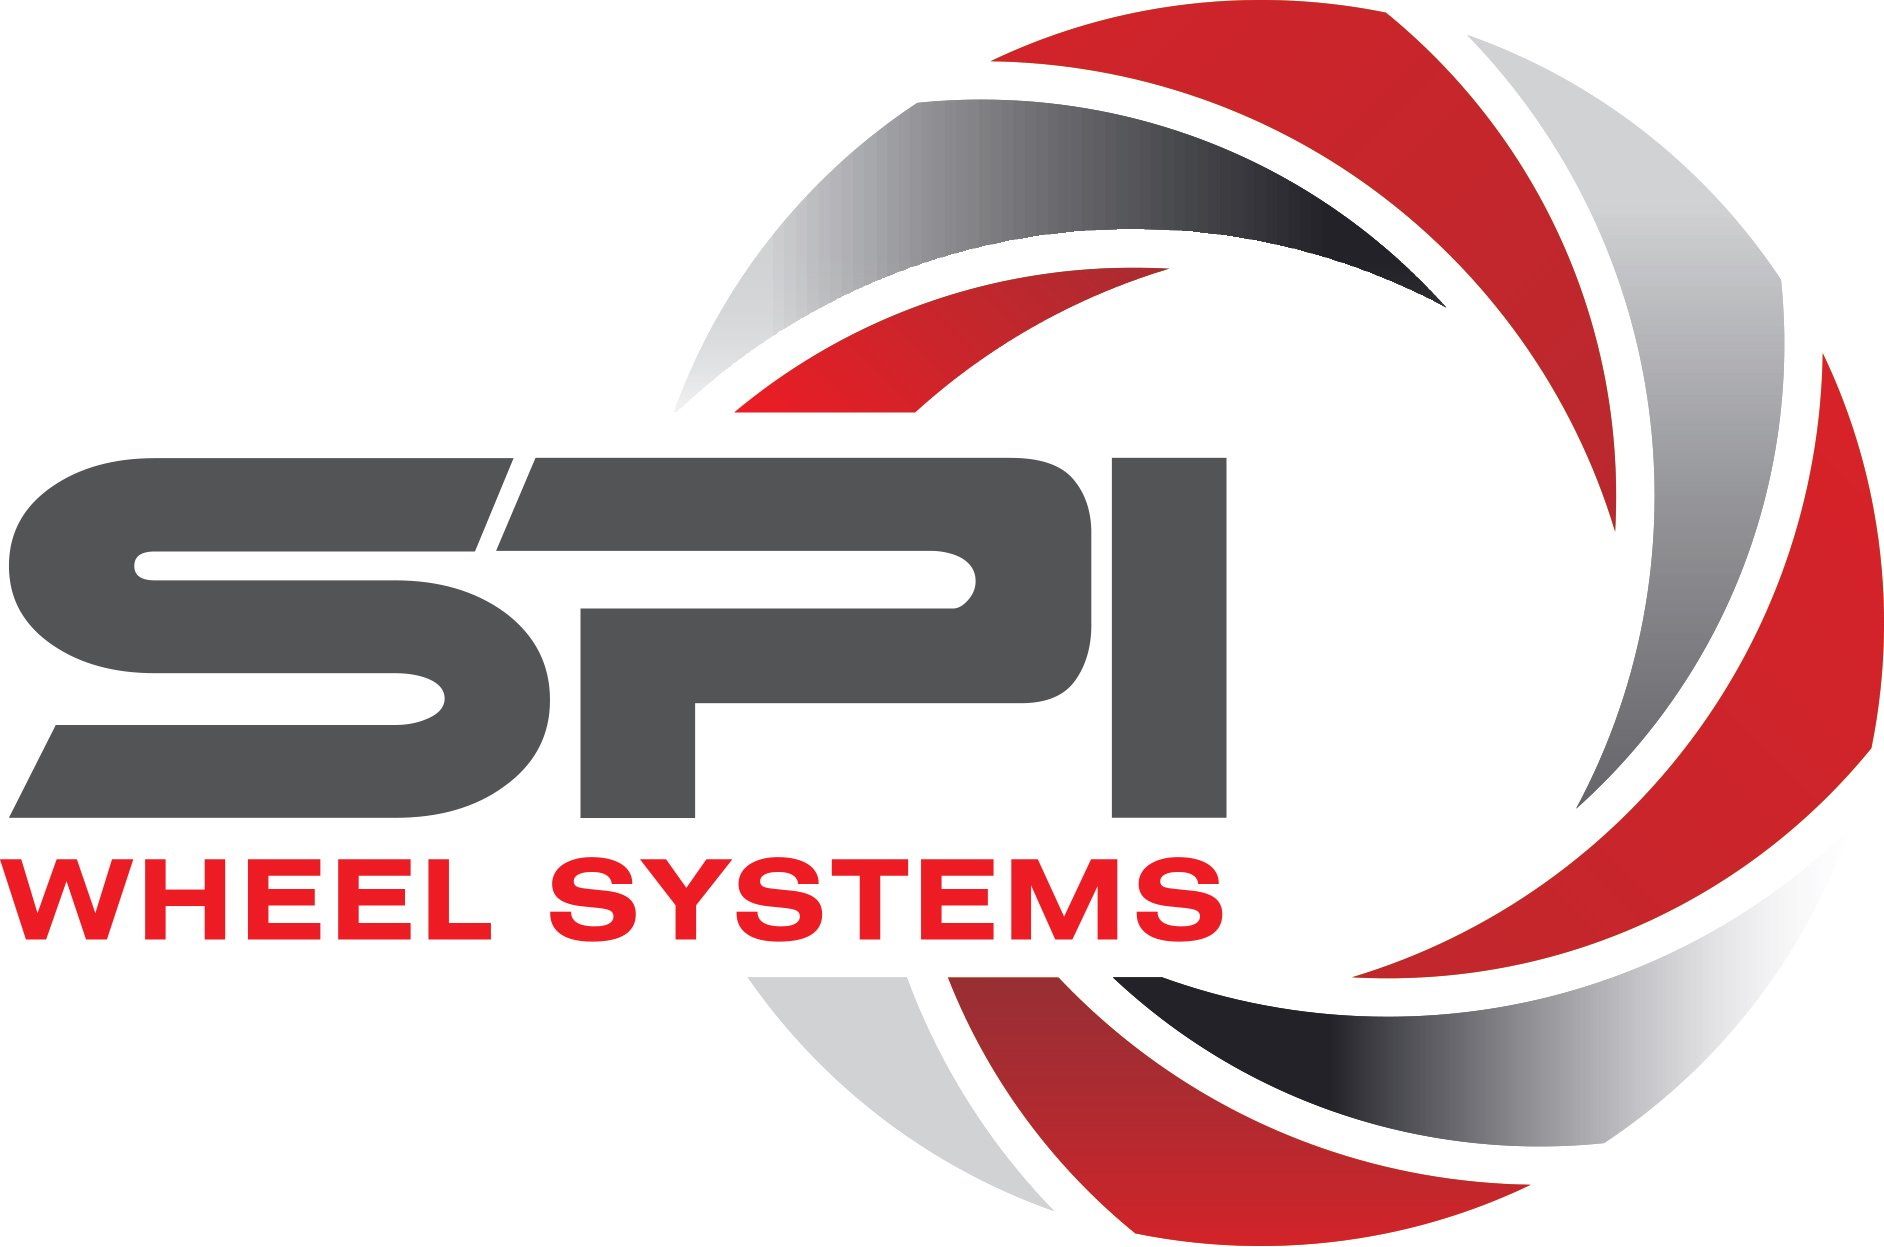 SPI WHEEL SYSTEMS ROW-CROP SOLUTIONS